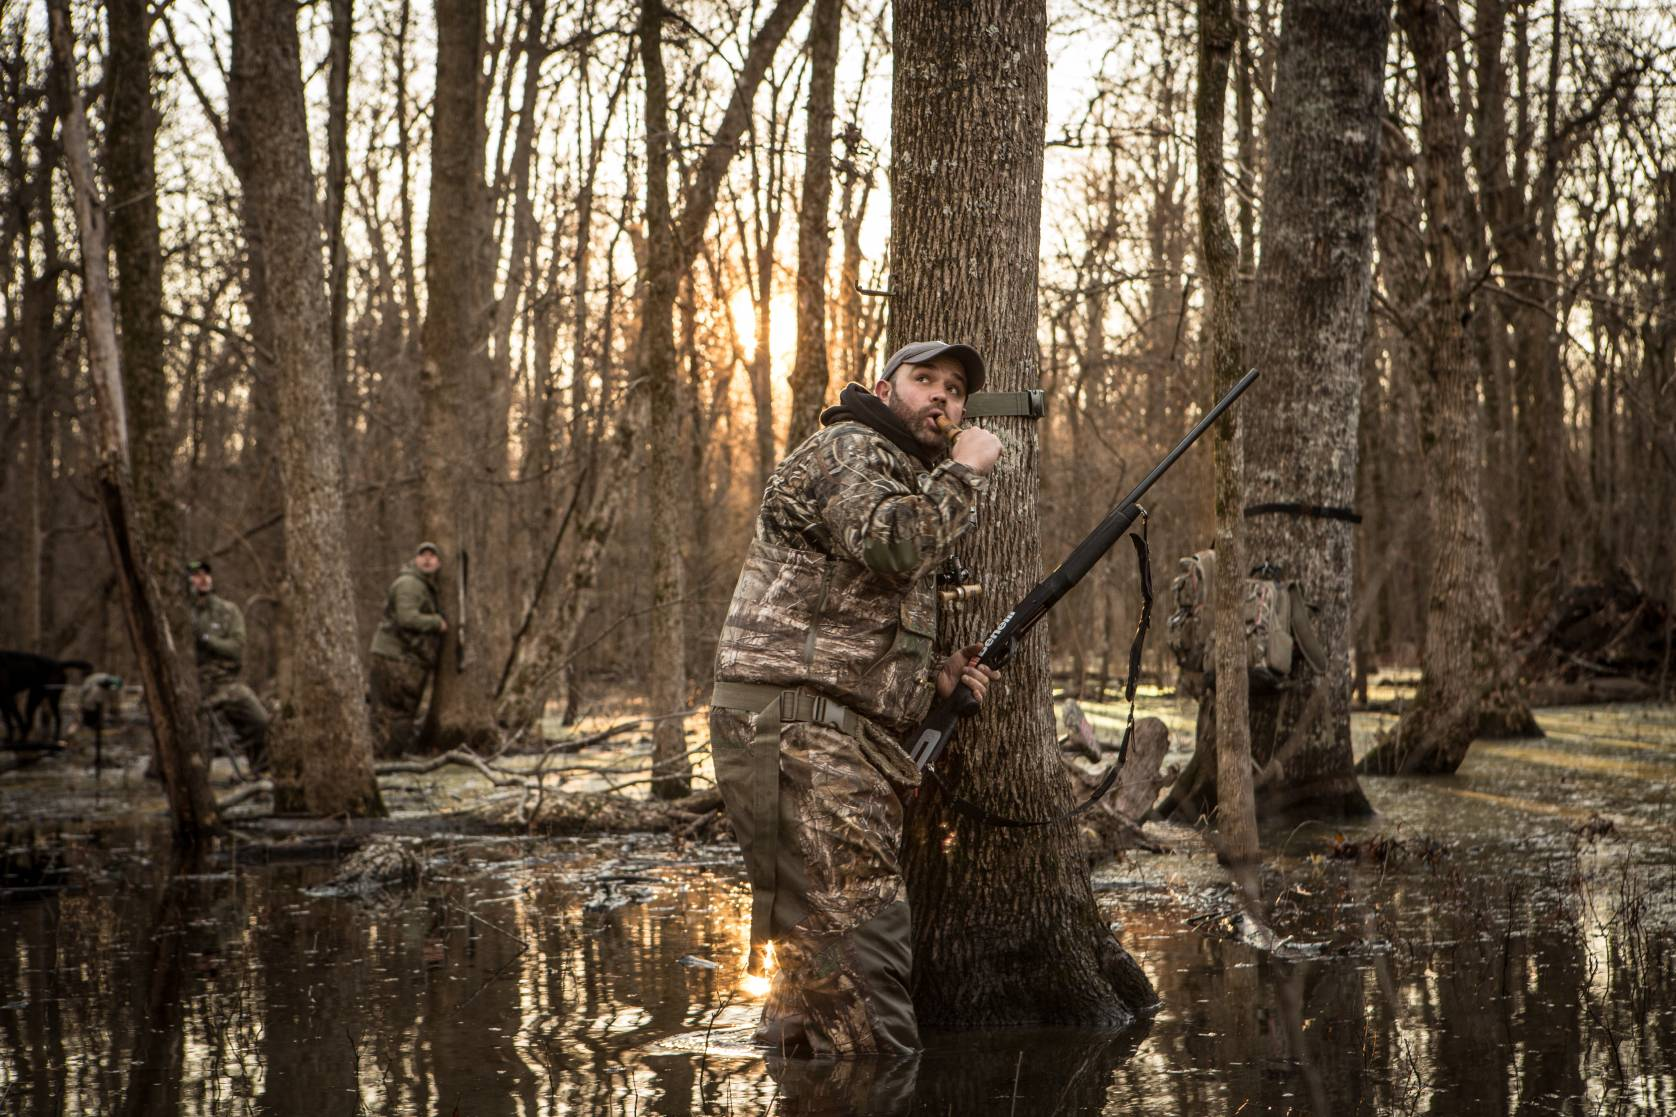 Duck hunting in a flooded forest